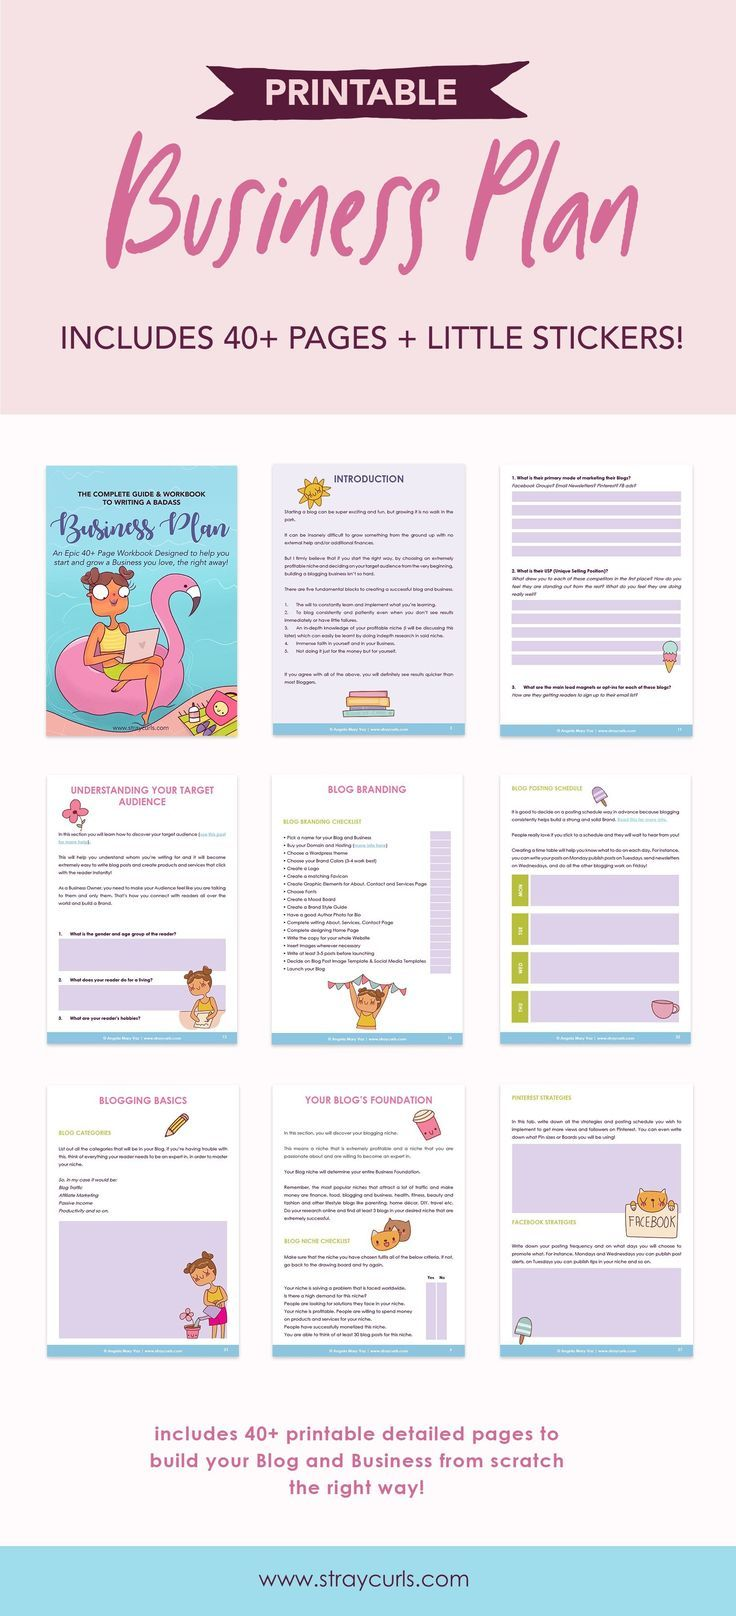 Business Plan Guide + Workbook by Stray Curls Business